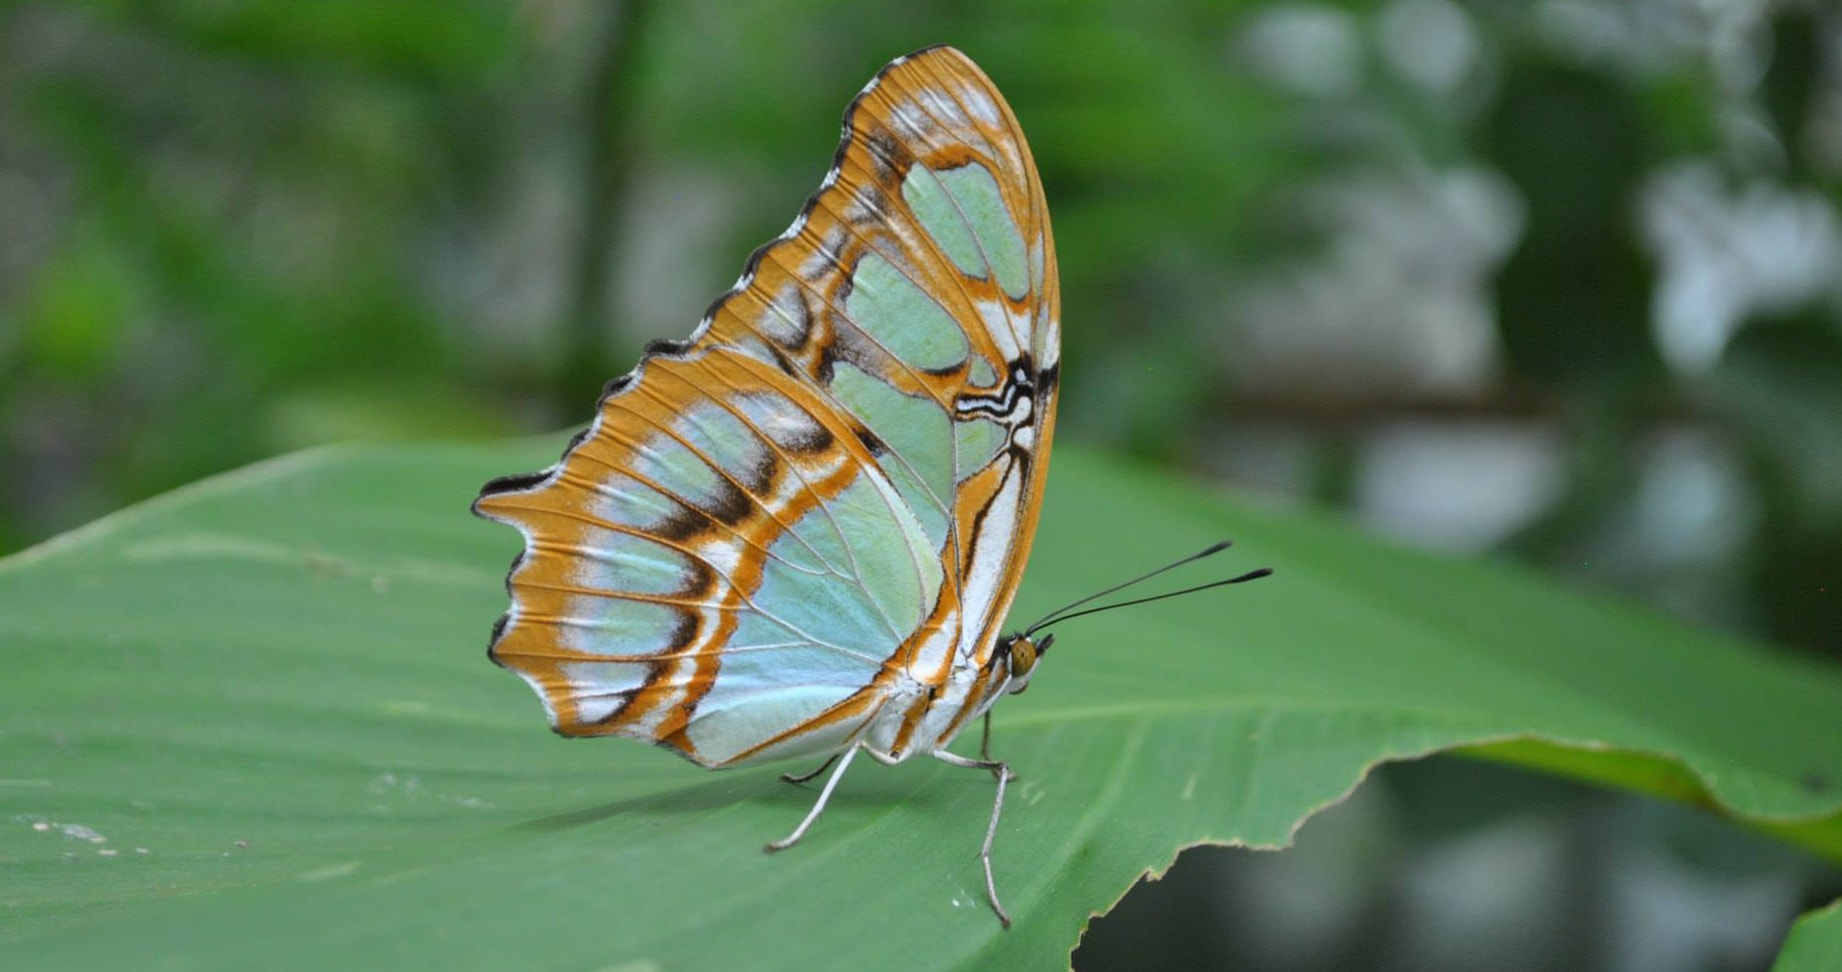 Pretty Butterfly on a Green Leaf